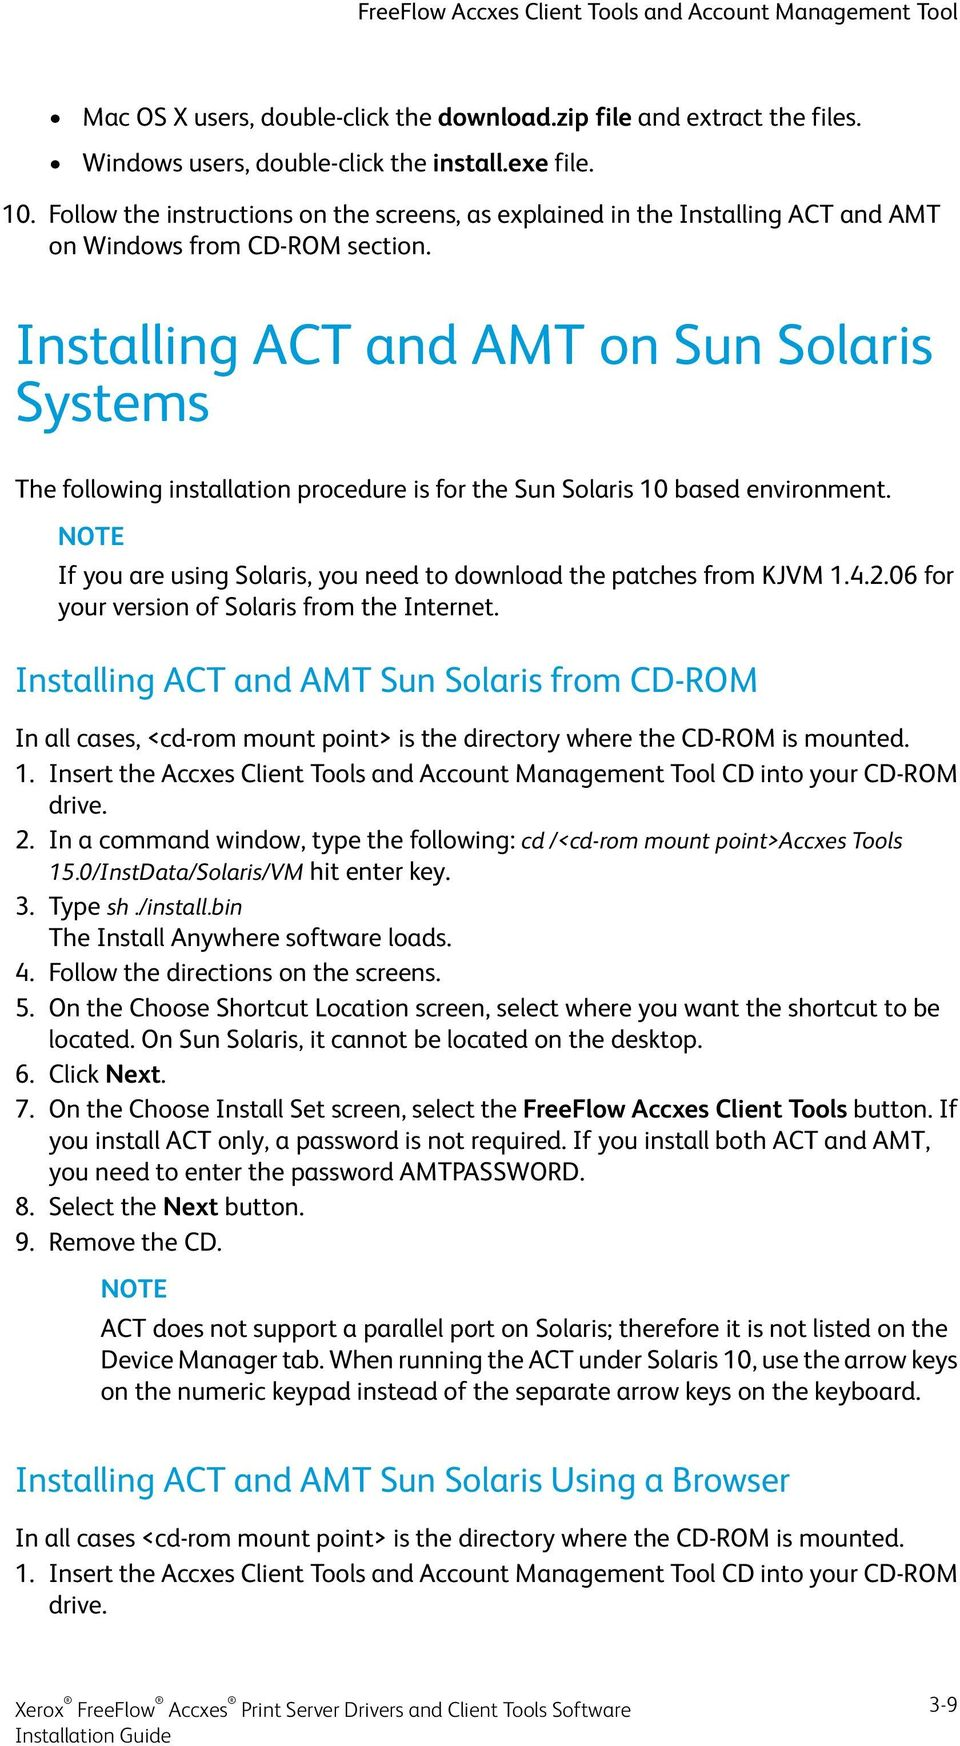 Installing ACT and AMT on Sun Solaris Systems The following installation procedure is for the Sun Solaris 10 based environment. If you are using Solaris, you need to download the patches from KJVM 1.